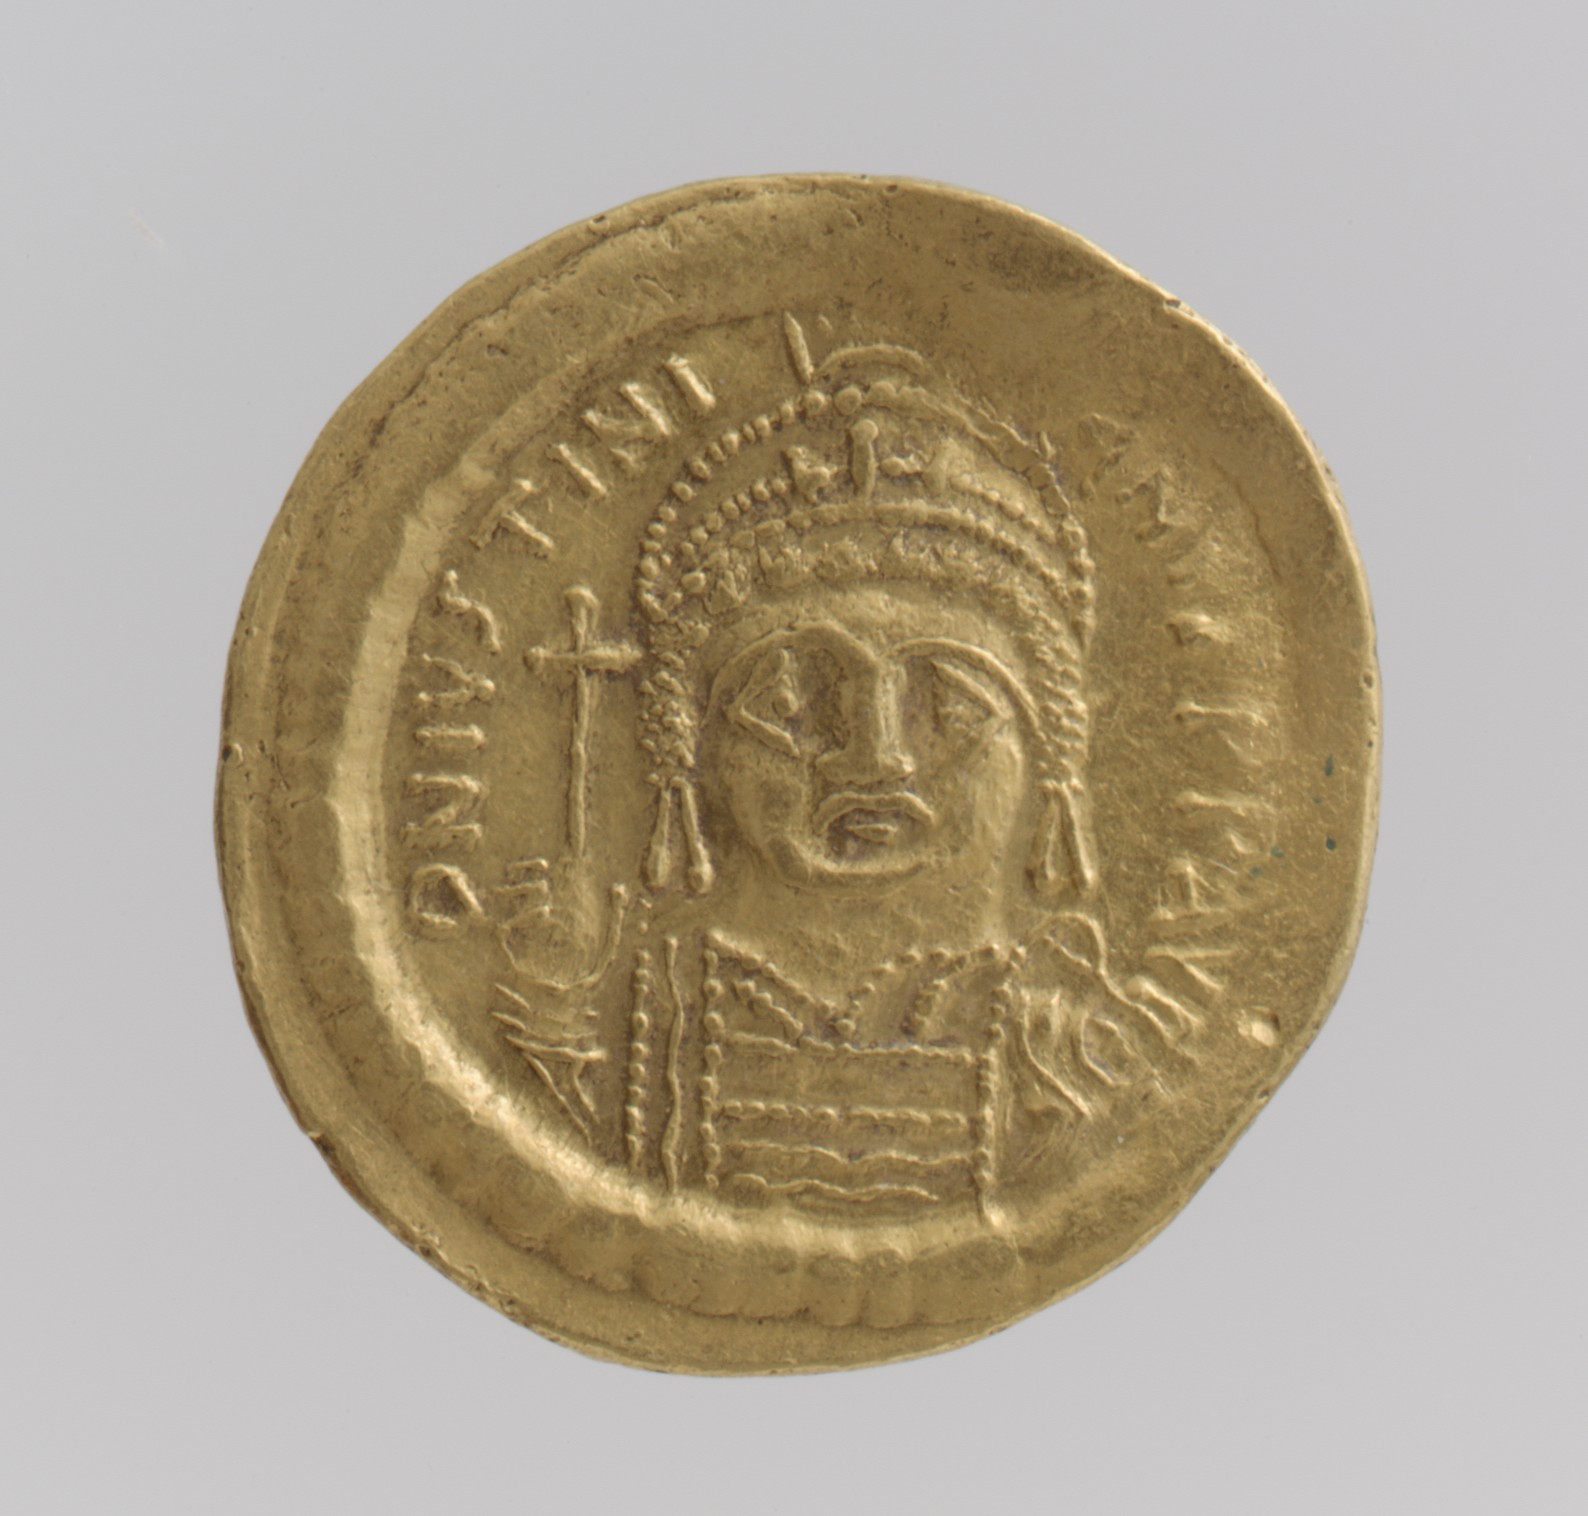 Gold Coin featuring an engraved image of a man with a crown